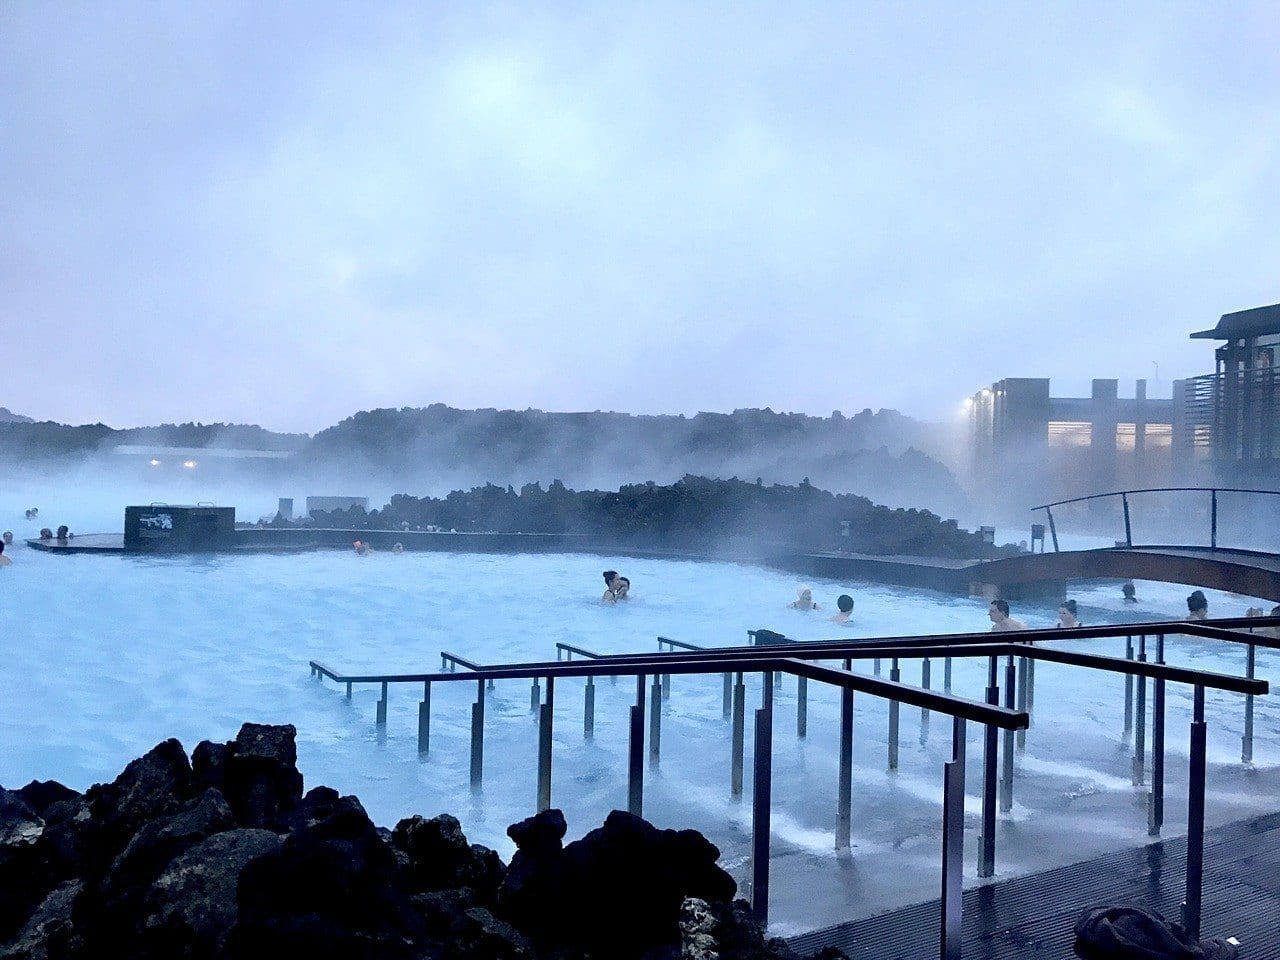 People swimming in Iceland's Blue Lagoon at dusk, steam rising up from the milky blue waters.